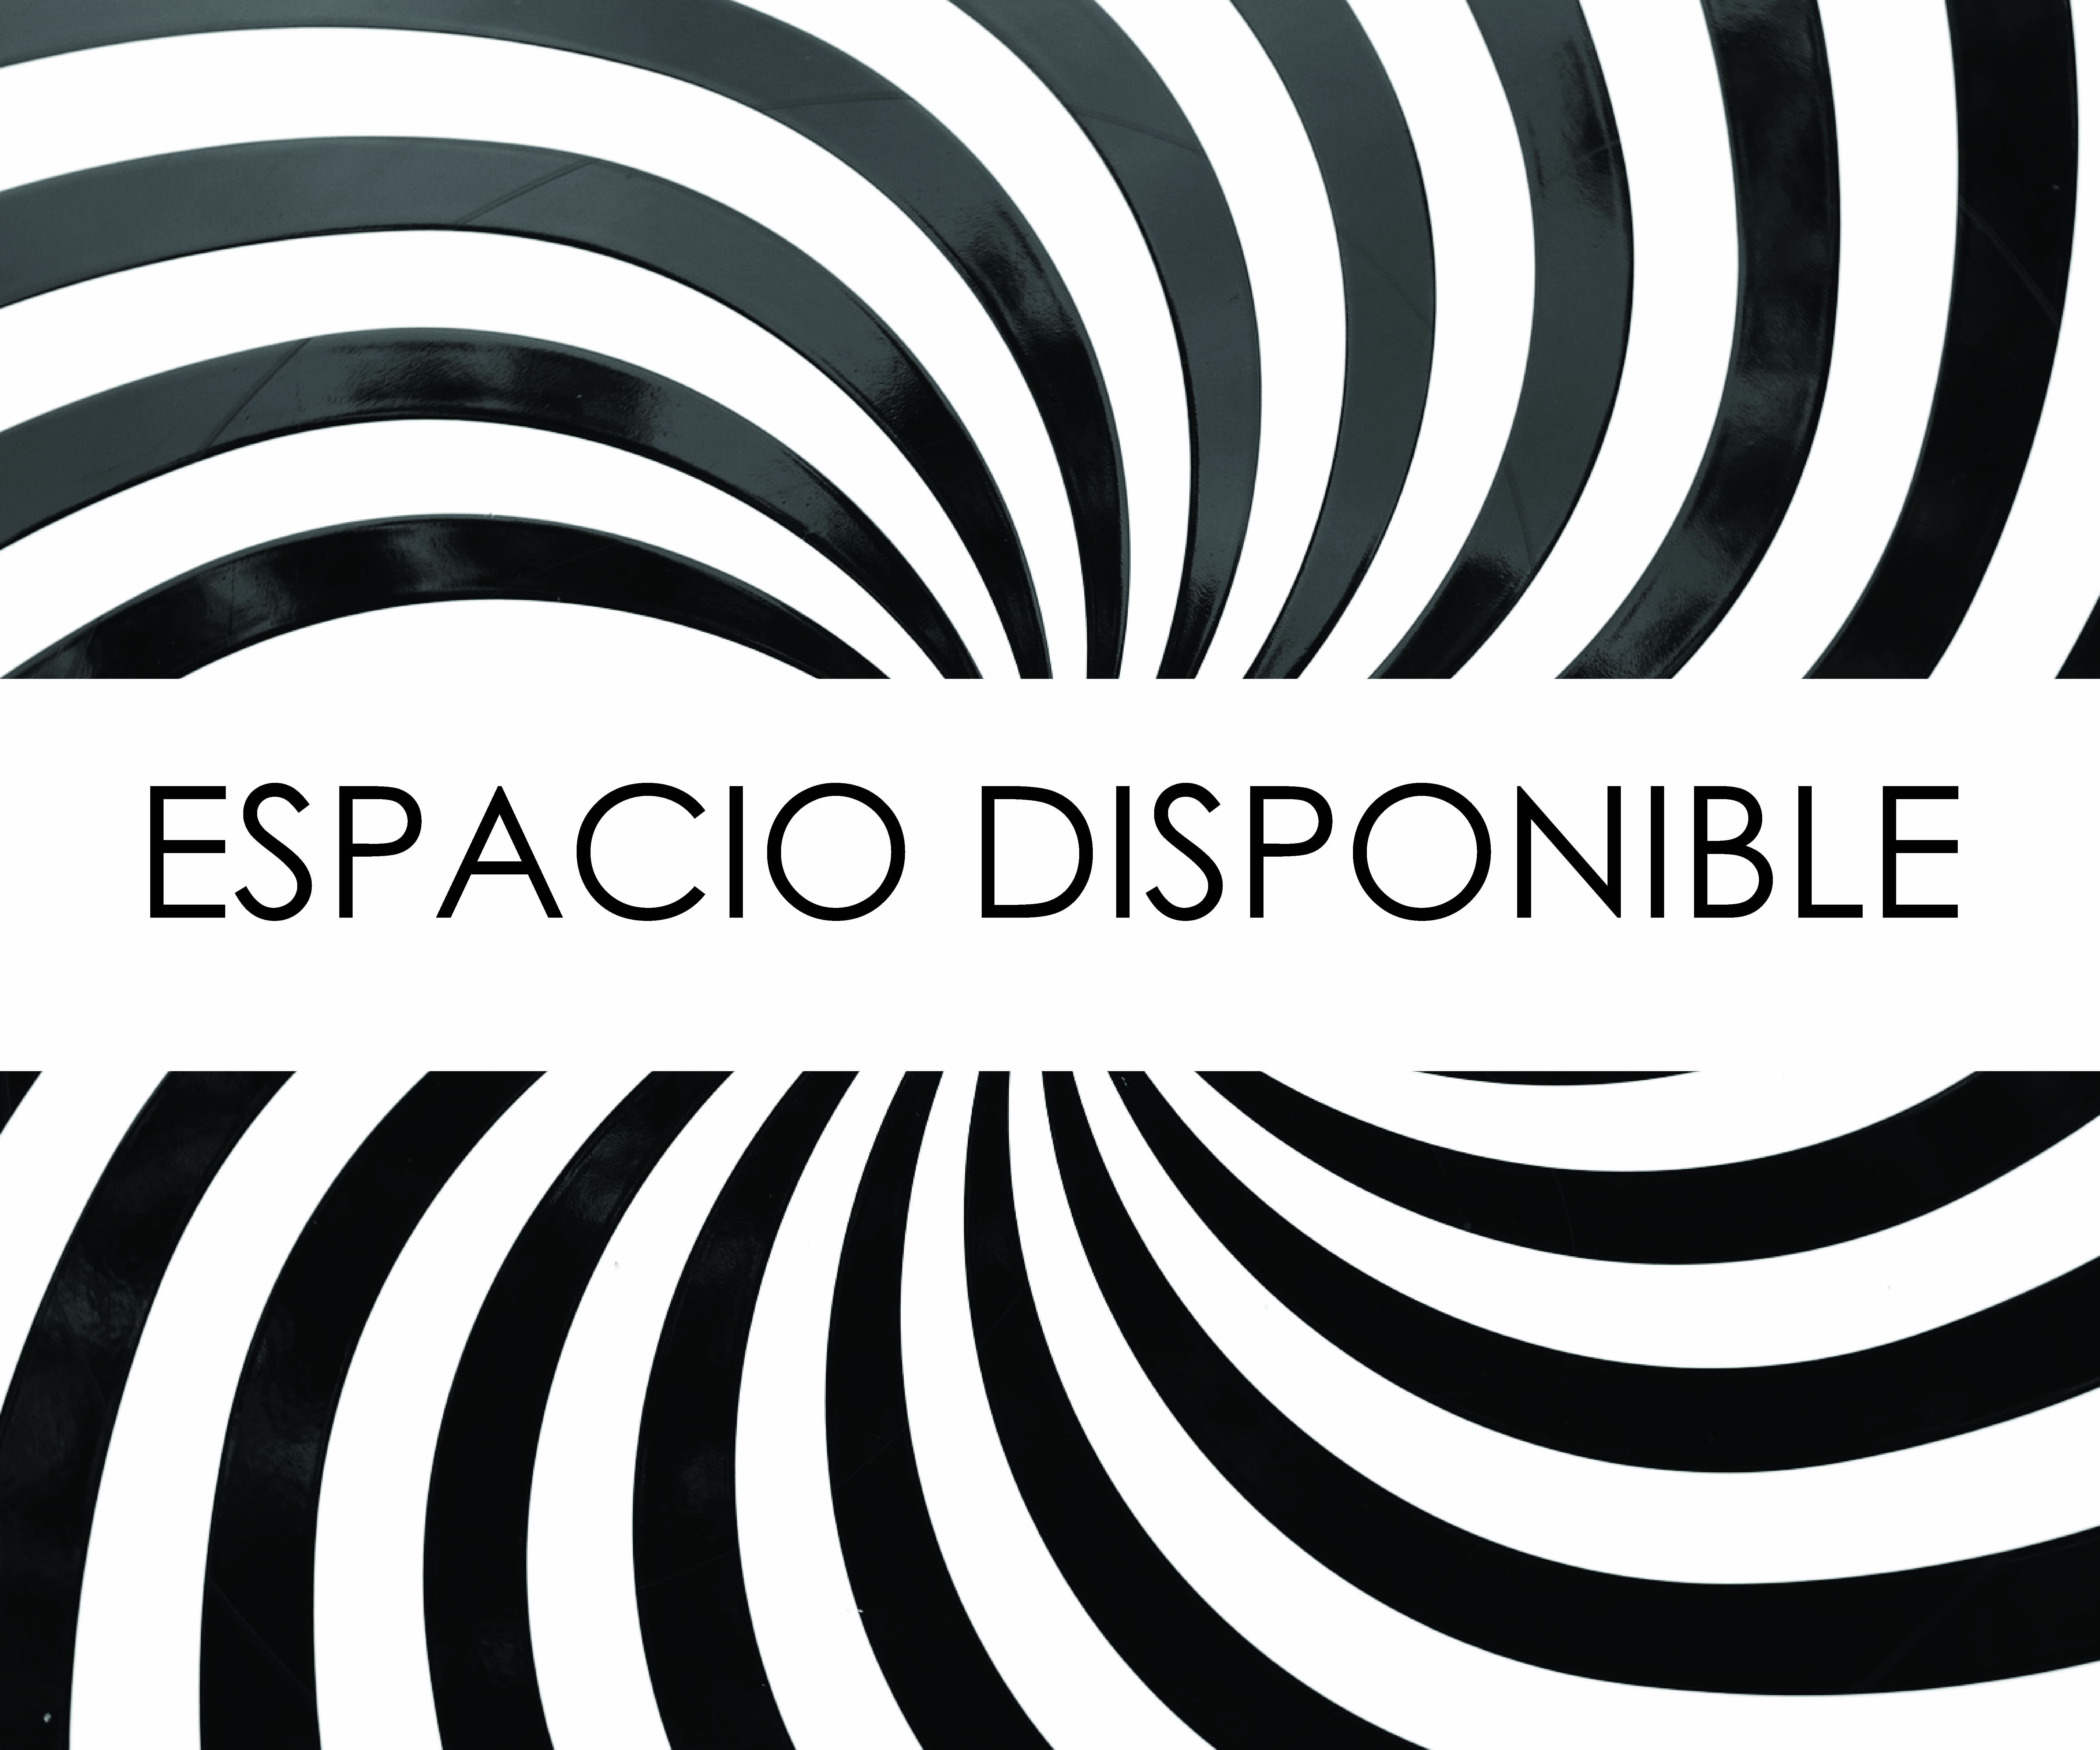 espacio-disponible-.jpg